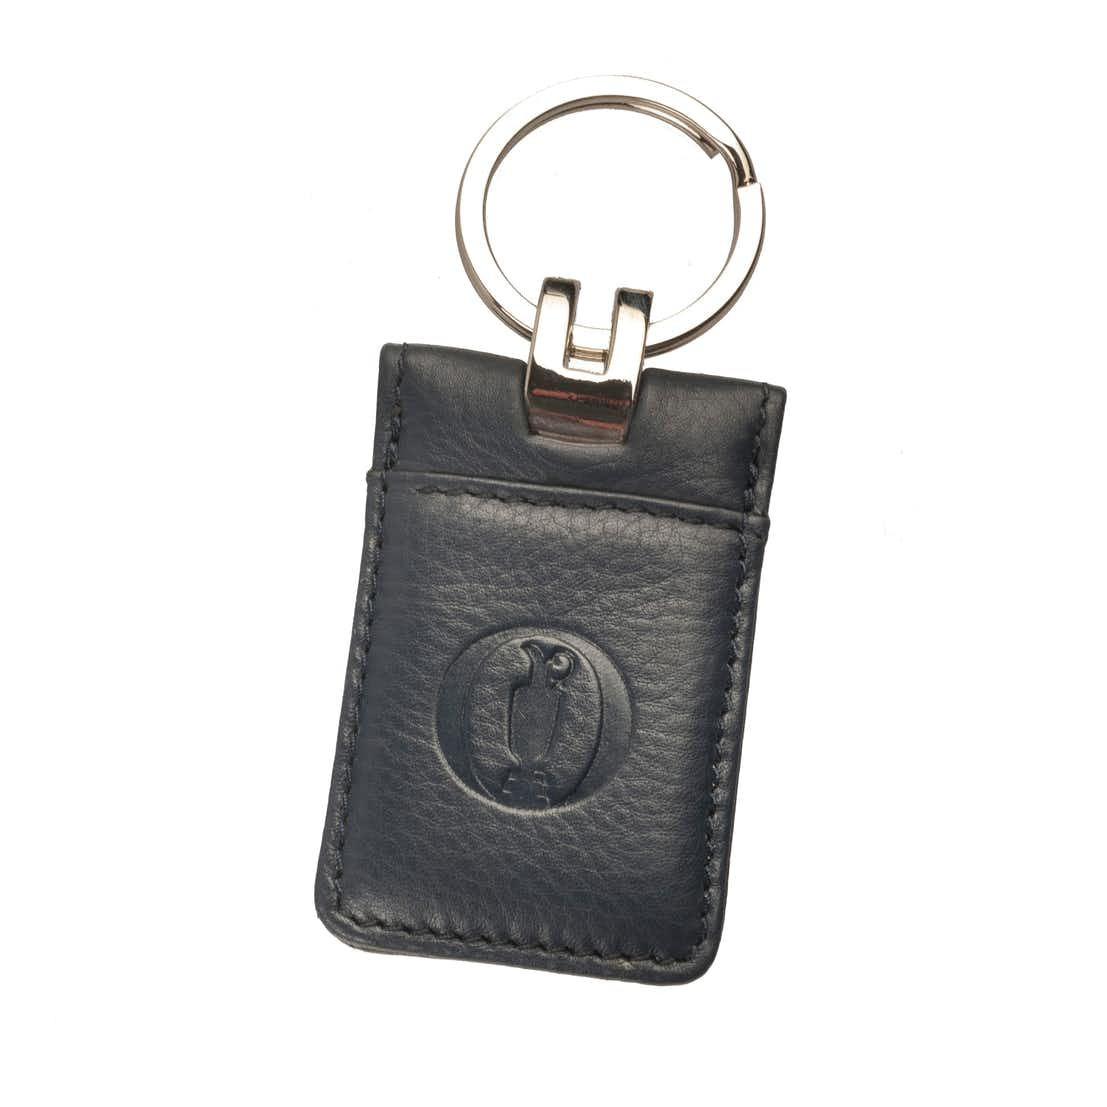 The Open Leather Embossed Keyring - Blue